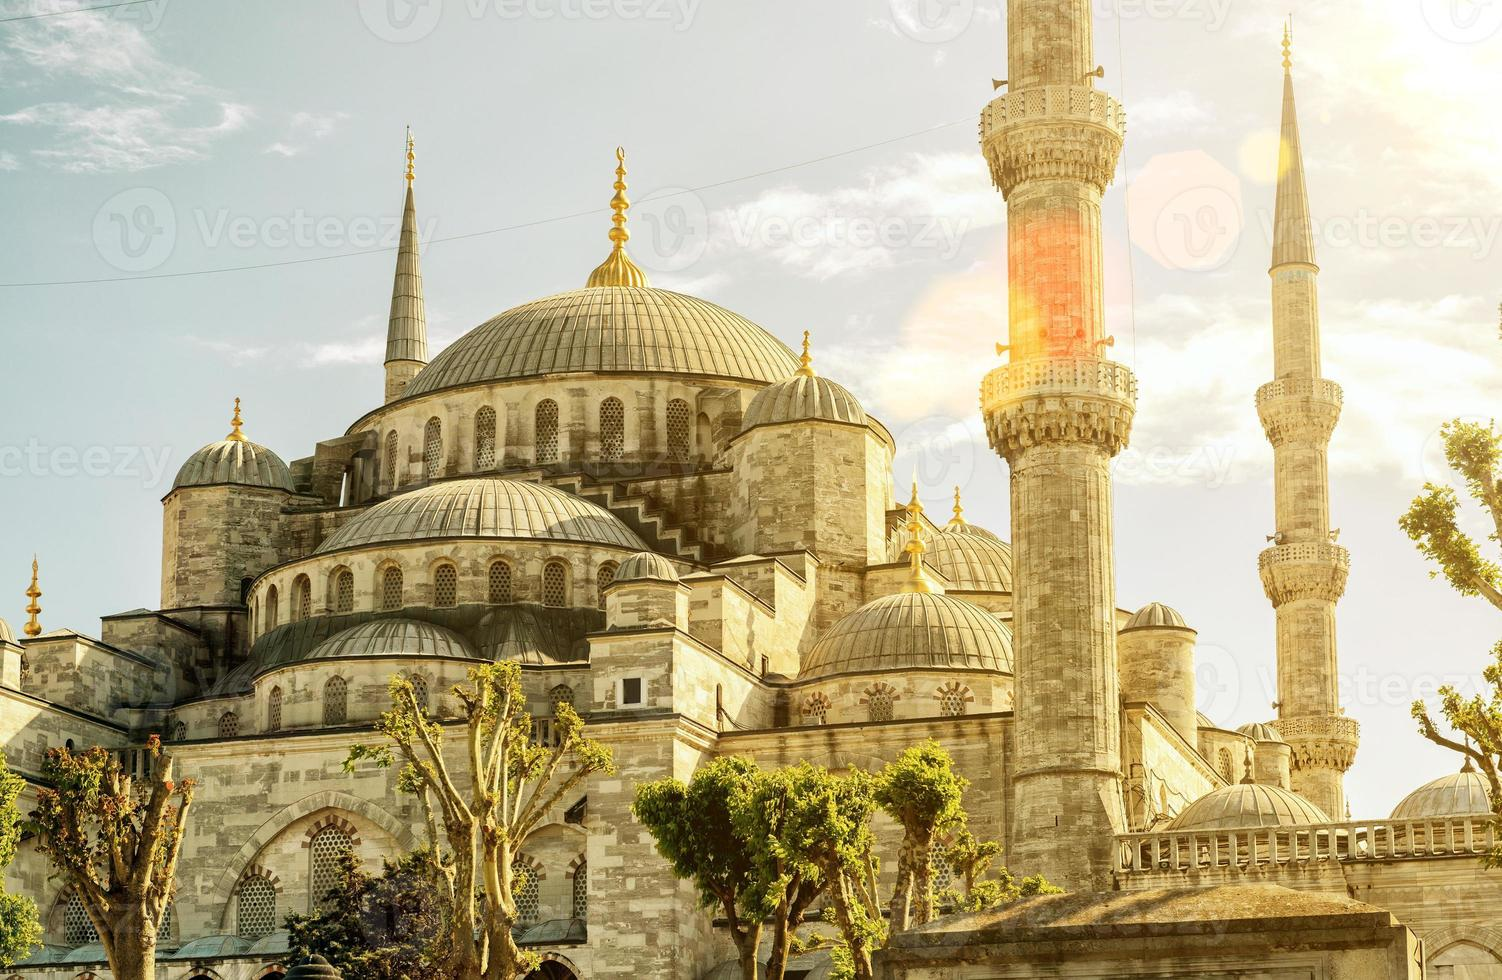 View of the Blue Mosque (Sultanahmet Camii) in Istanbul photo